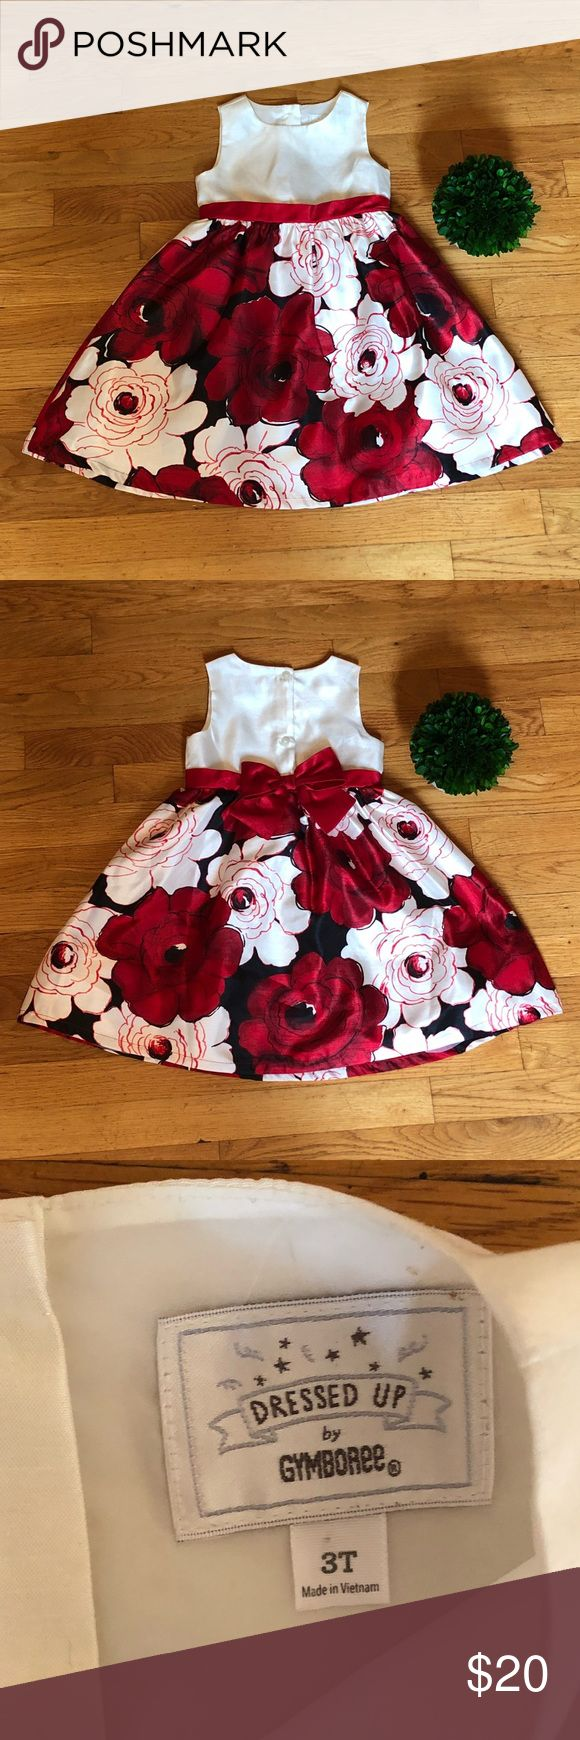 Gymboree Toddler holiday dress Gymboree Toddler holiday dress. Red, black & white flowers. Now on back. Worn once. There is a minor light pink stain on the front of the dress. Perhaps with dry cleaning it will come out. Gymboree Dresses Formal